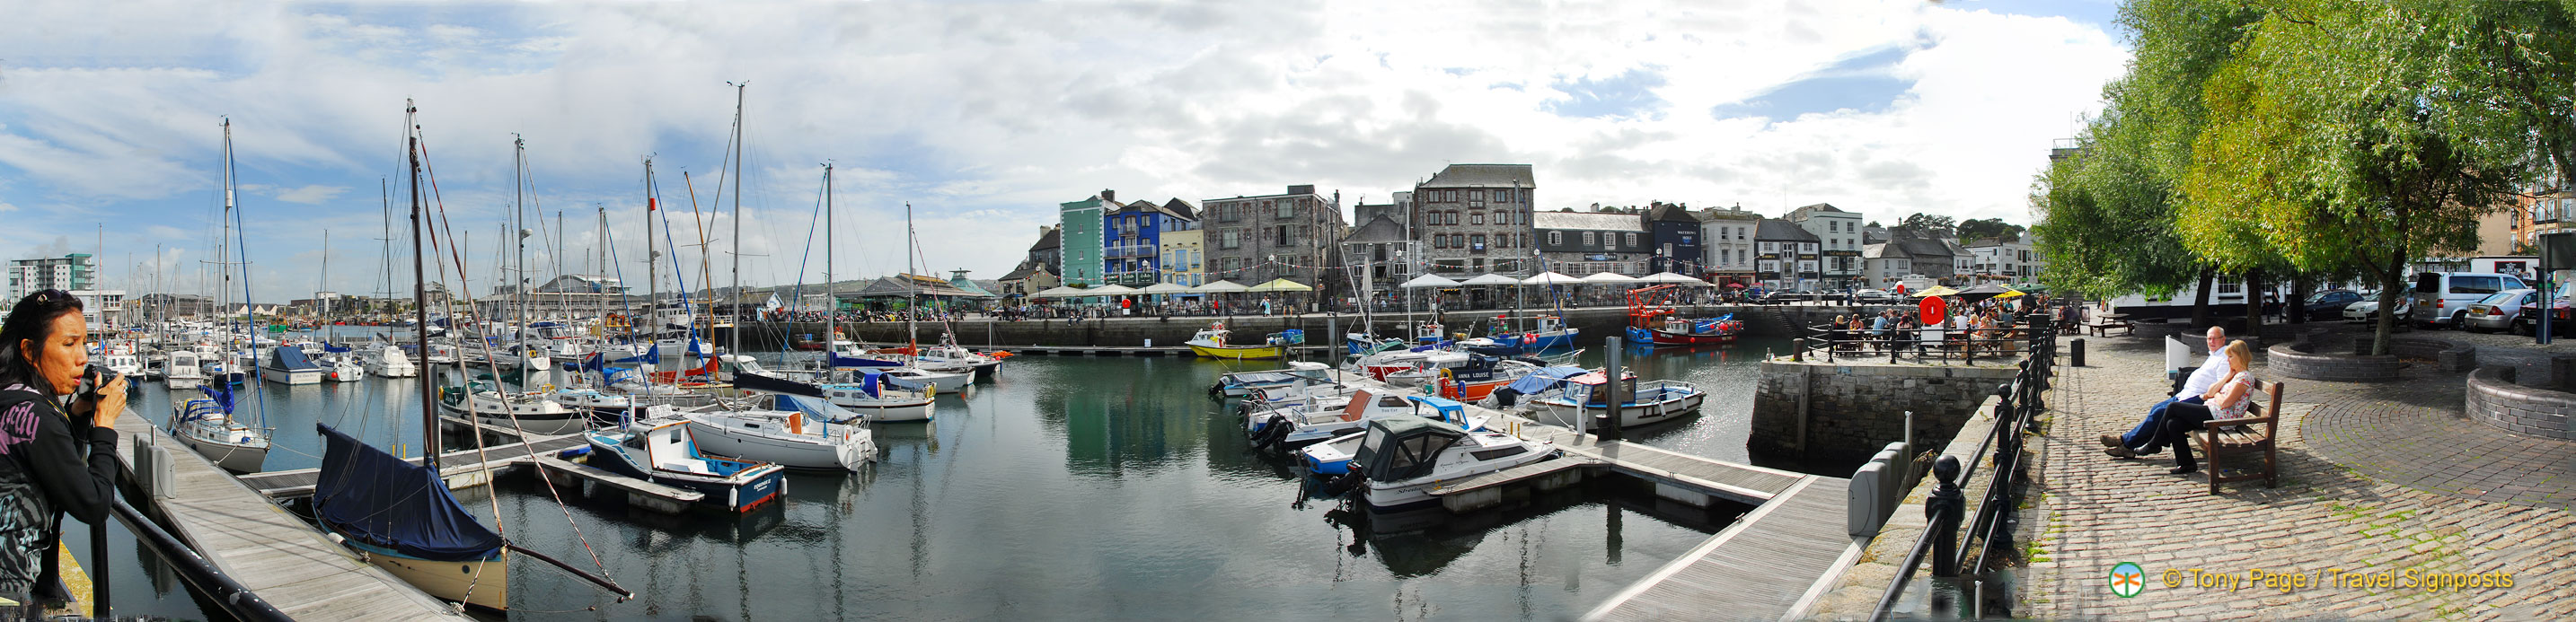 Panorama of Sutton Harbour Marina